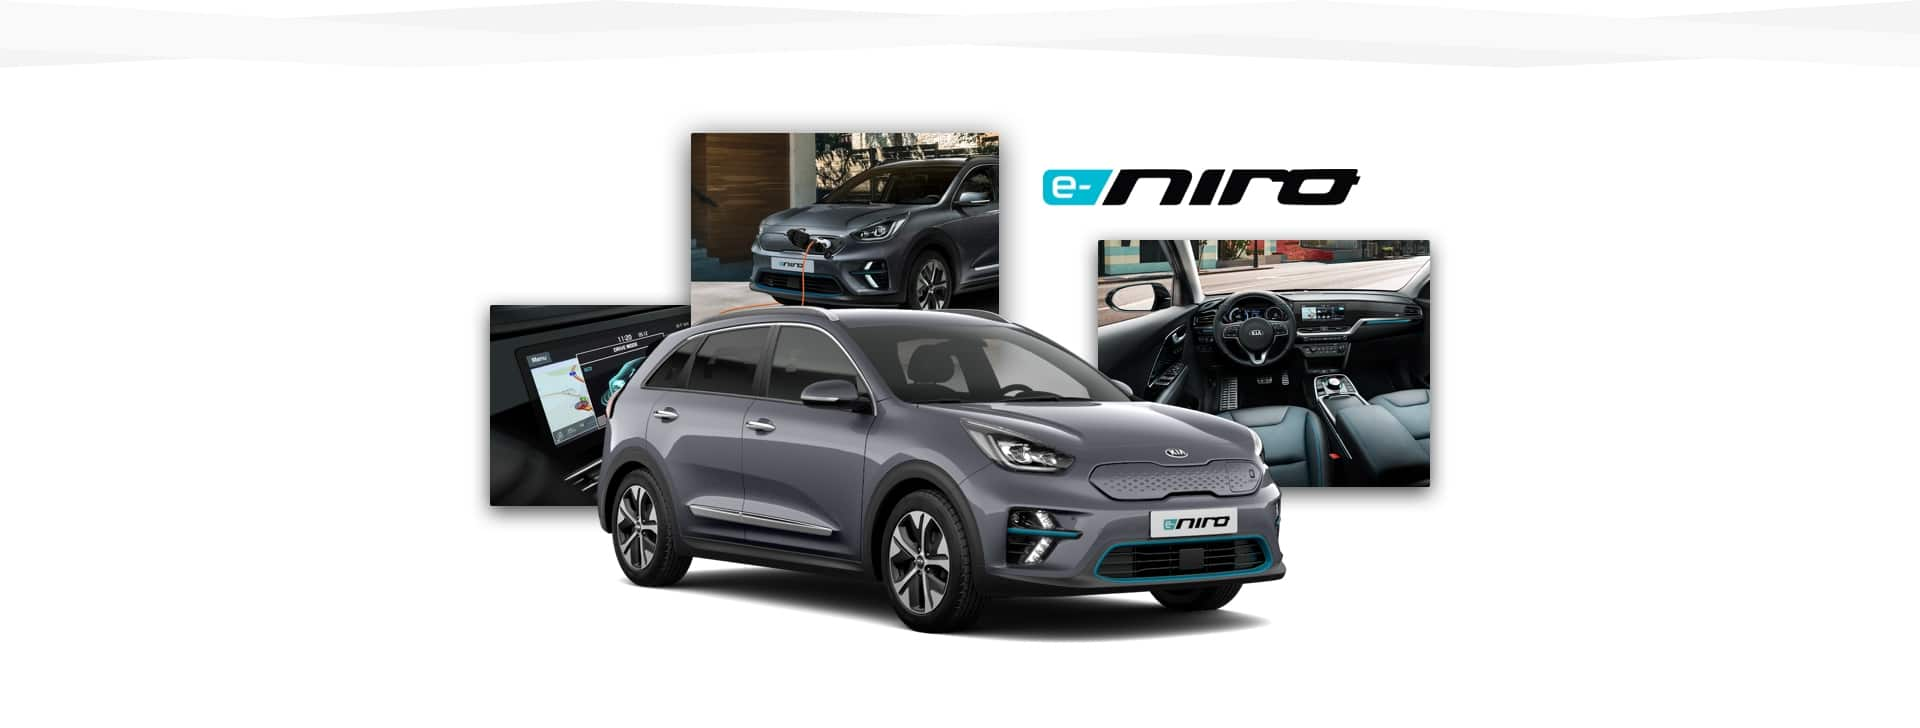 Side view of Kia e-Niro with shots of navigation panel, charging point and cabin